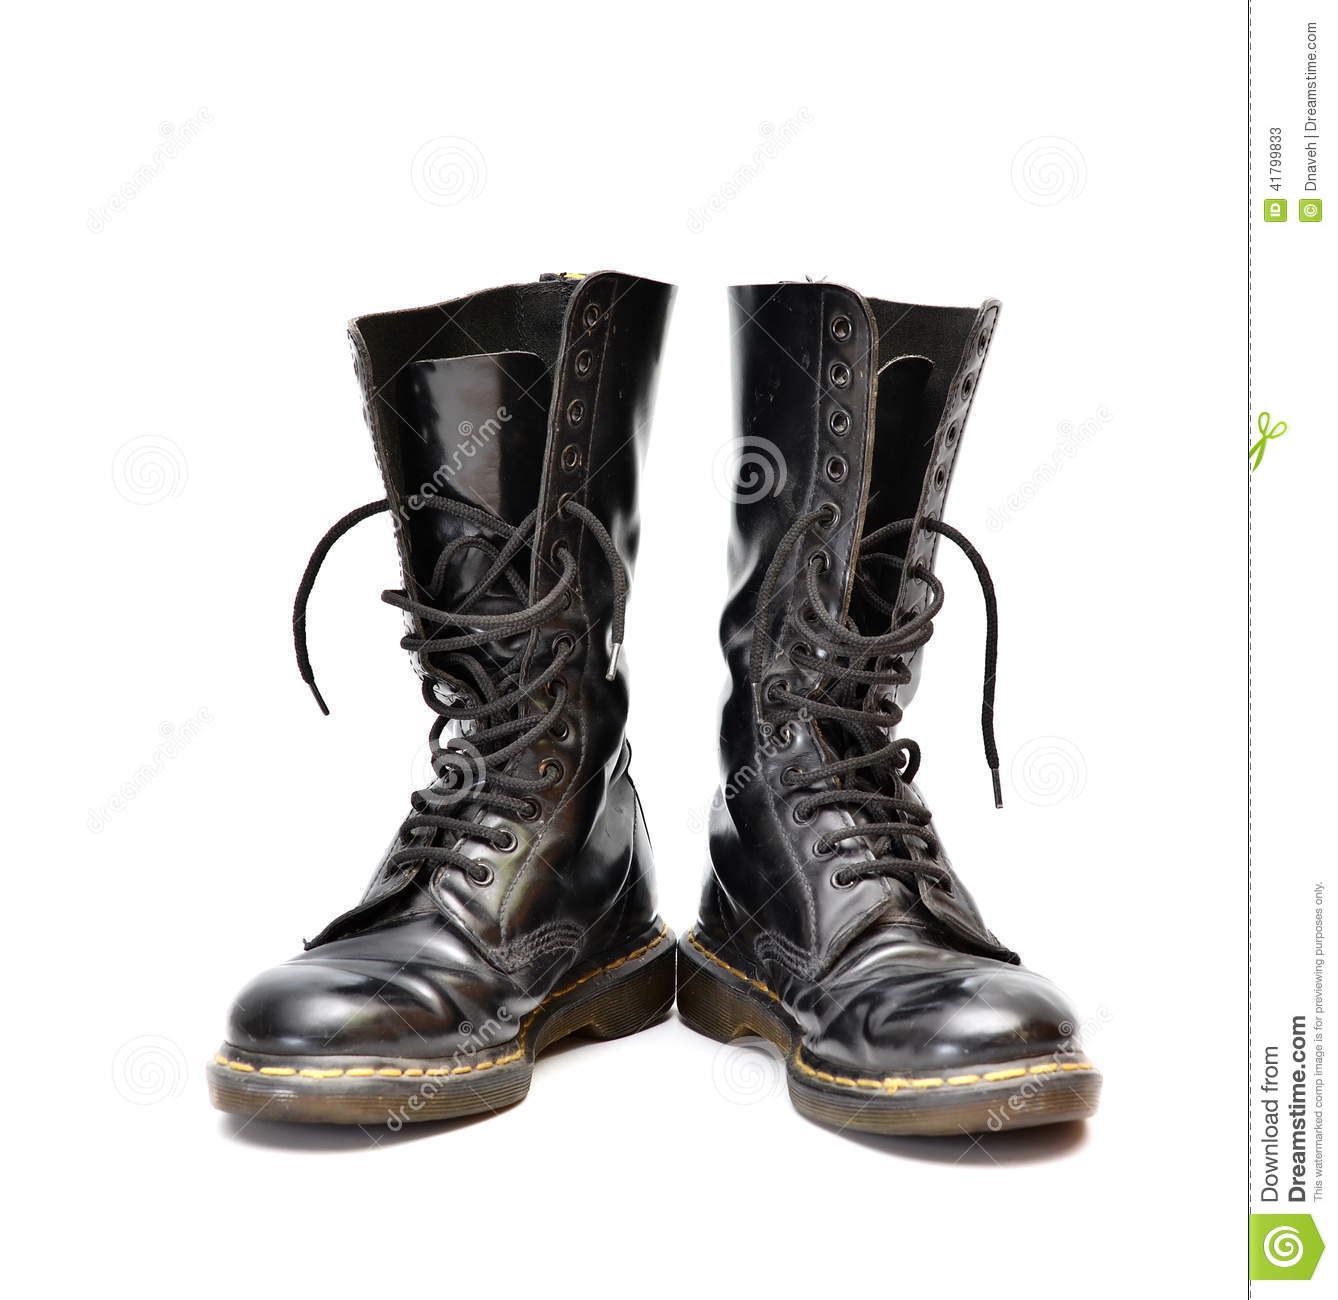 Pair Of Mid Calf 14 Eyelet Black Lace Up Boots Stock Image